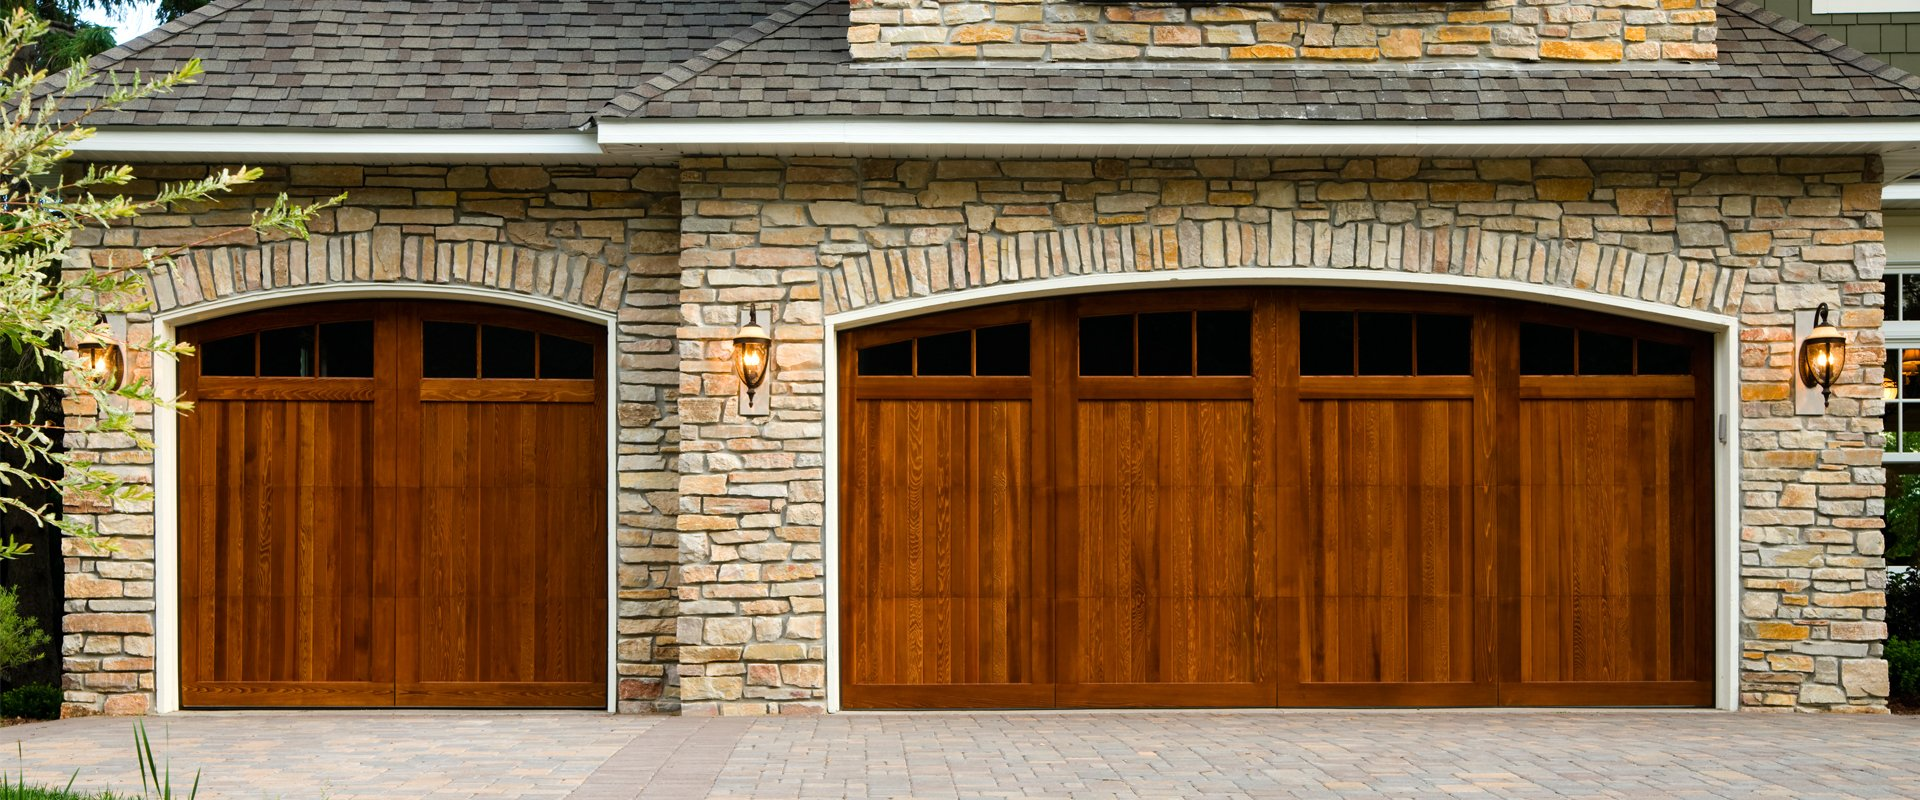 New Garage Doors In Exeter From Paramount Garage Doors